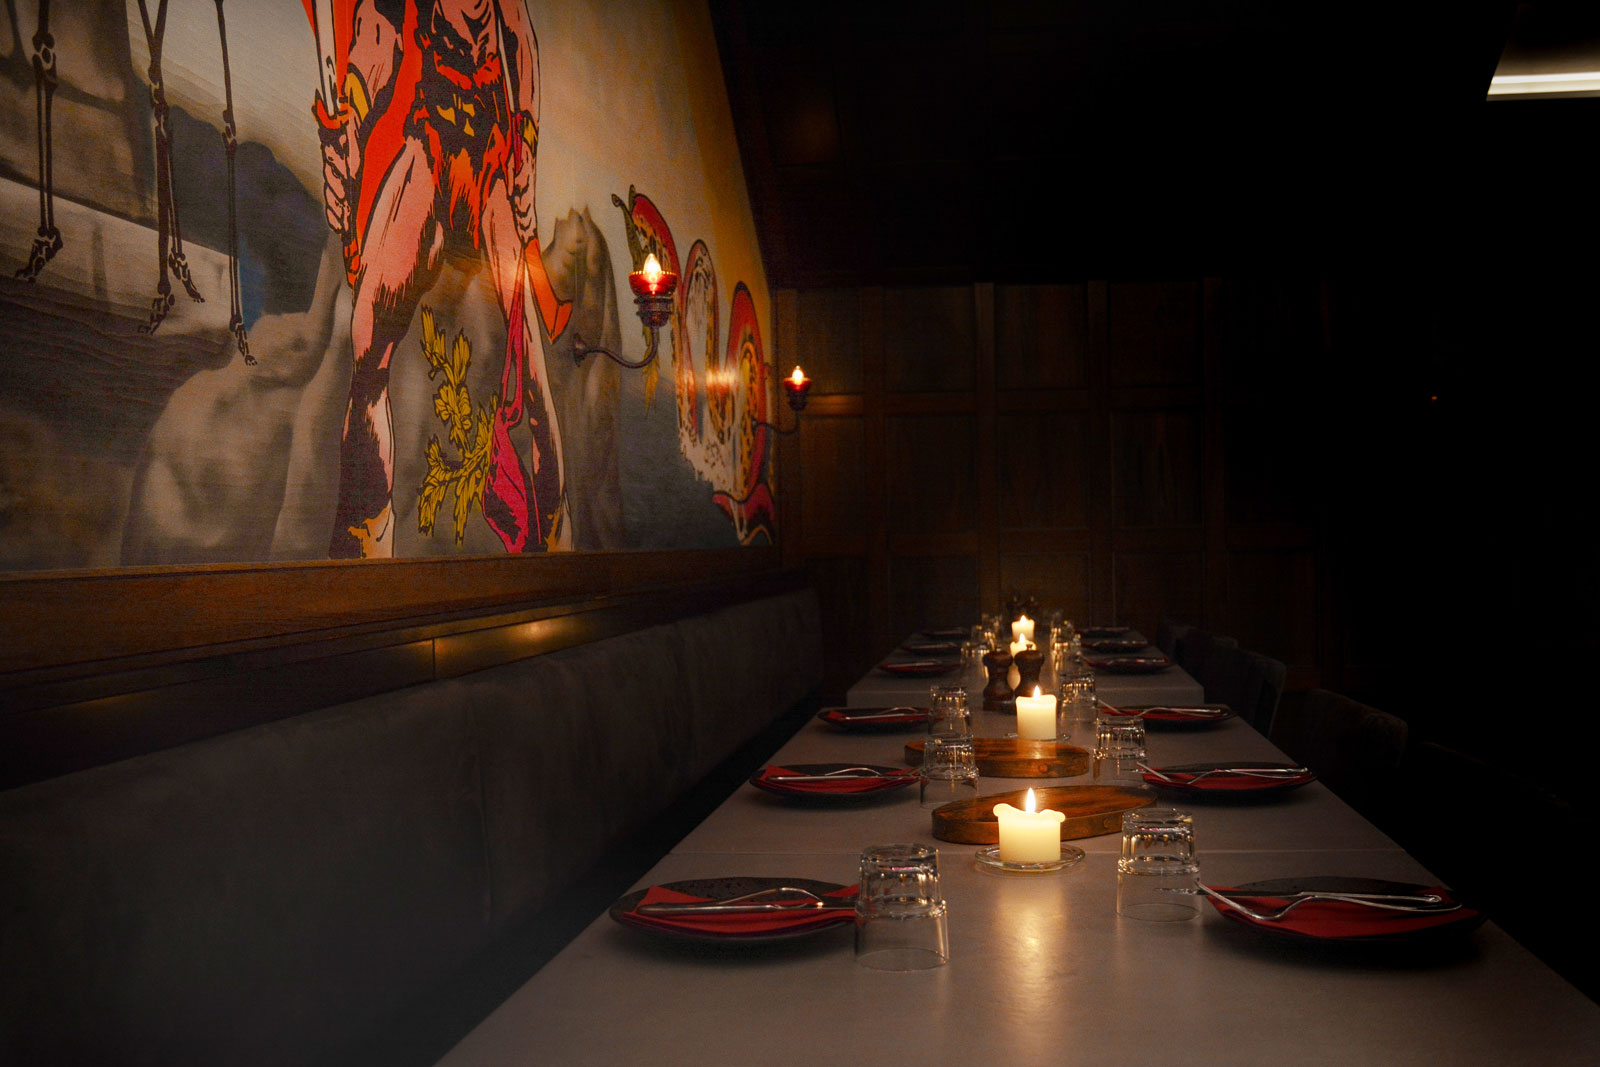 Firedog's Delight After Launching New Turkish Dinner Menu 5